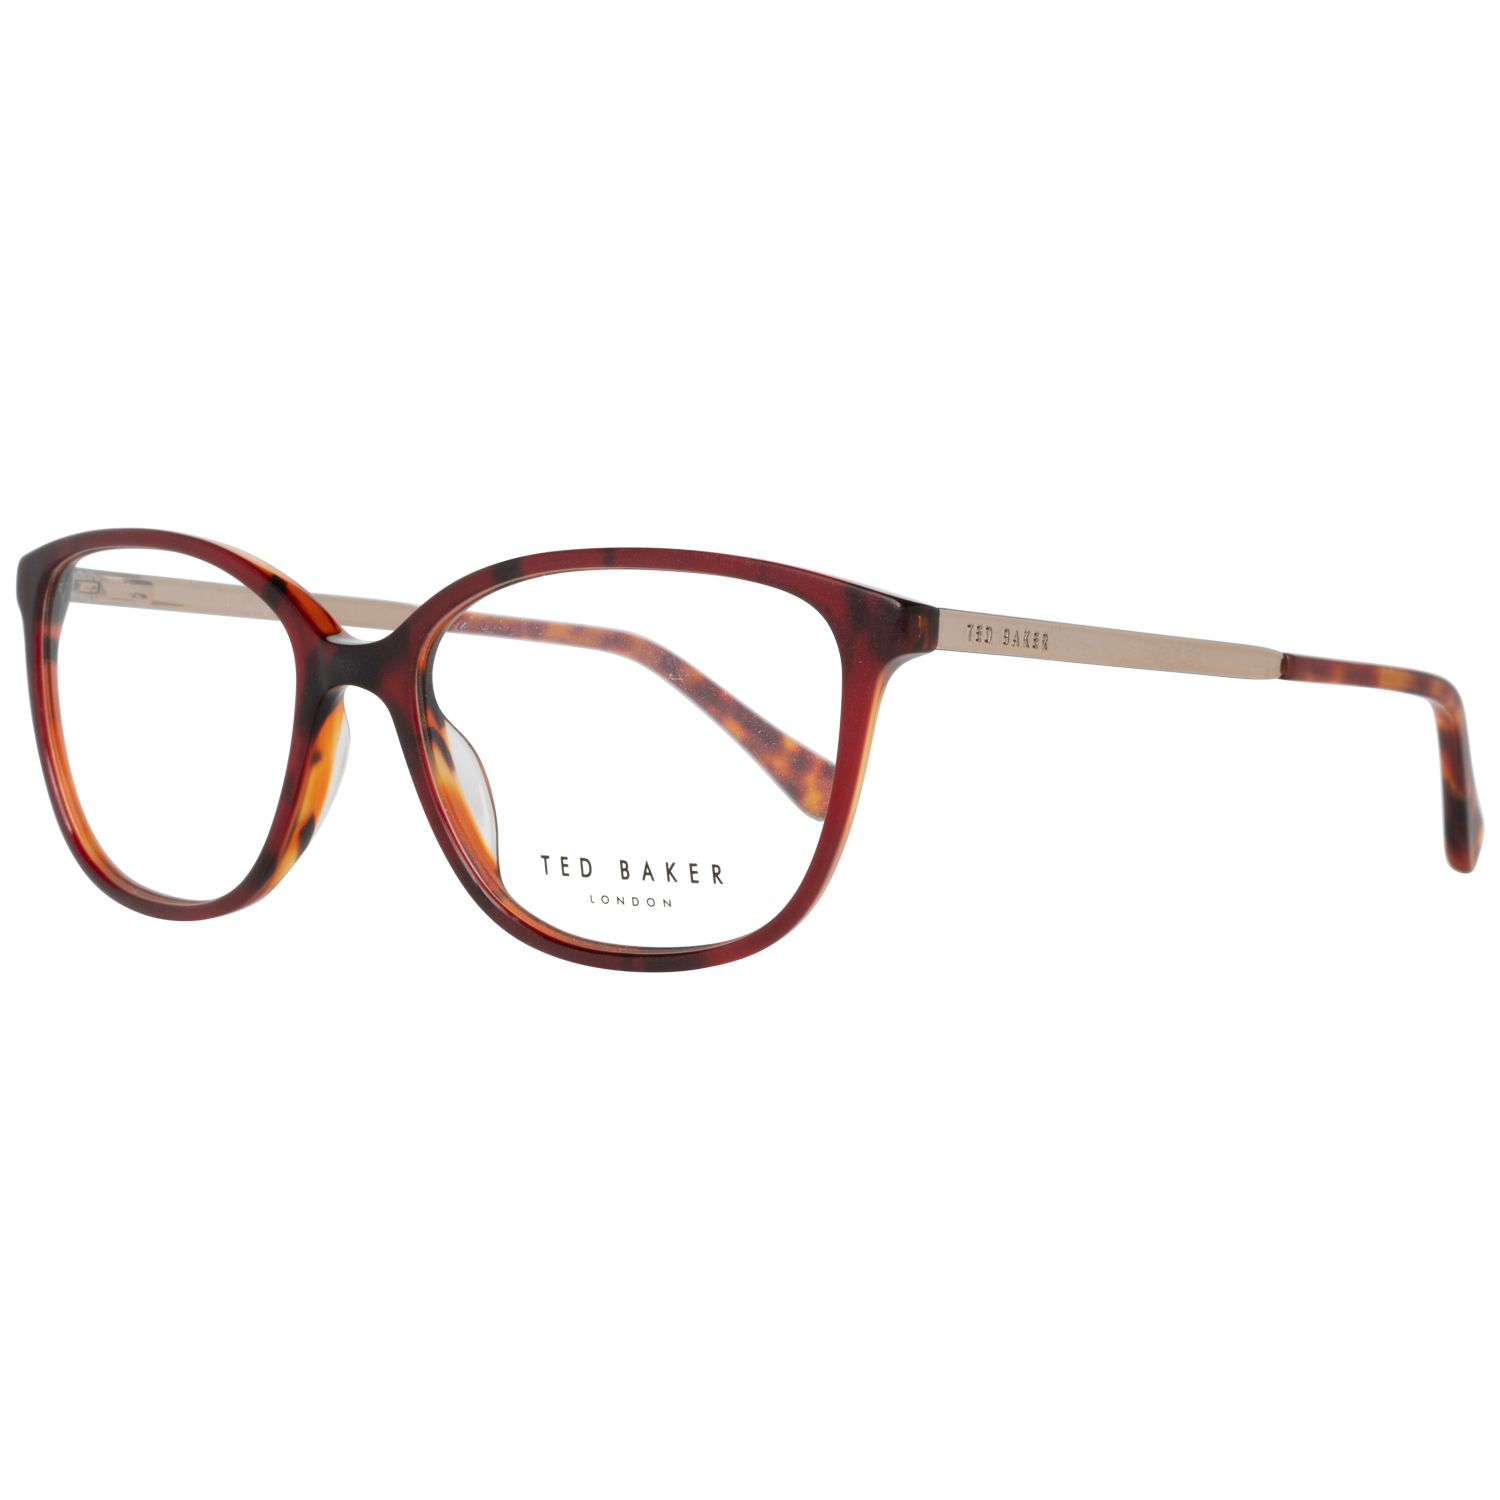 Ted Baker Optical Frame TB9096 223 53 Women Brown